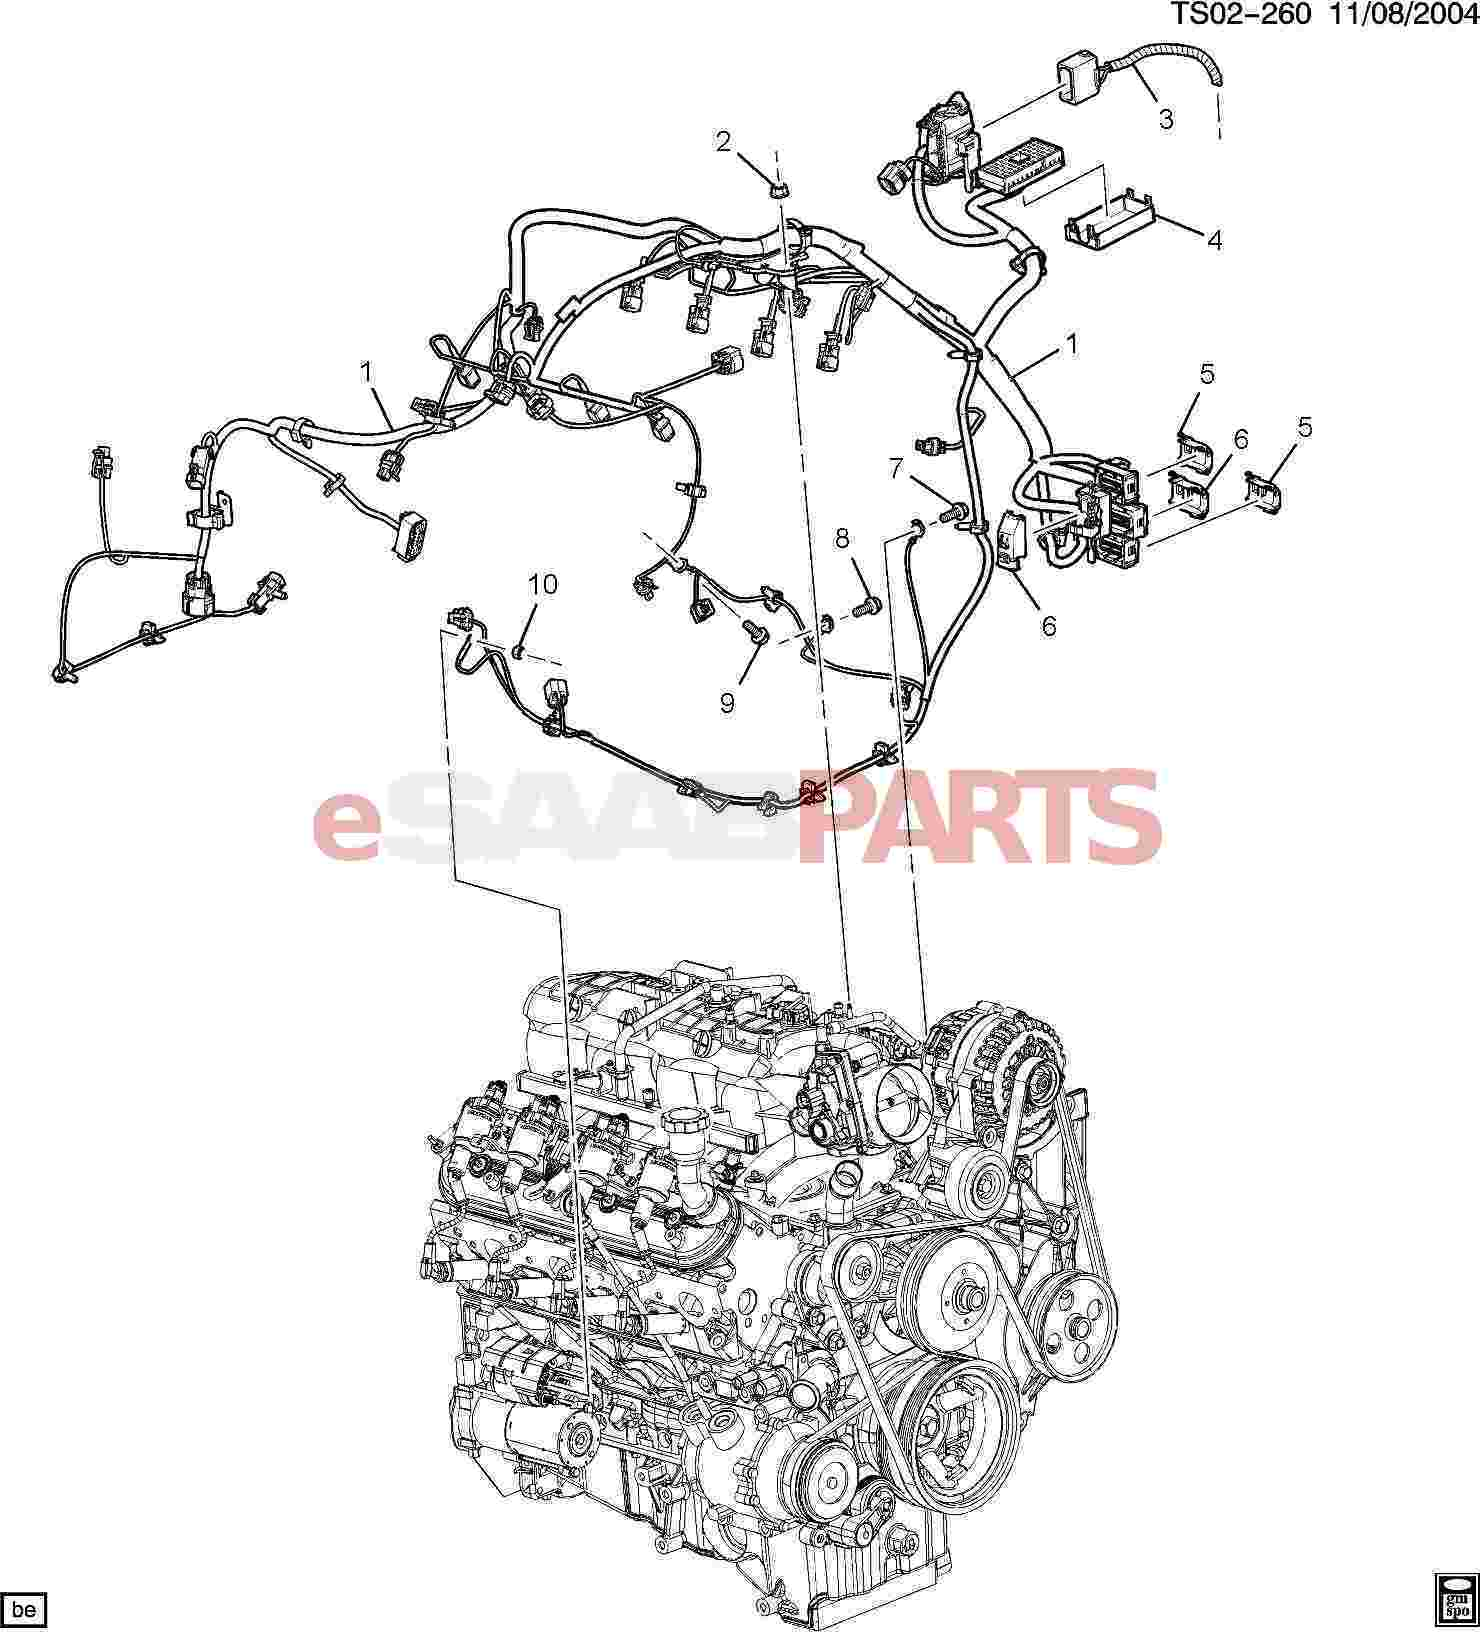 eSaabParts.com - Saab 9-7x > Electrical Parts > Wiring Harness > Wiring  Harness/Engine (5.3M,6.0H)